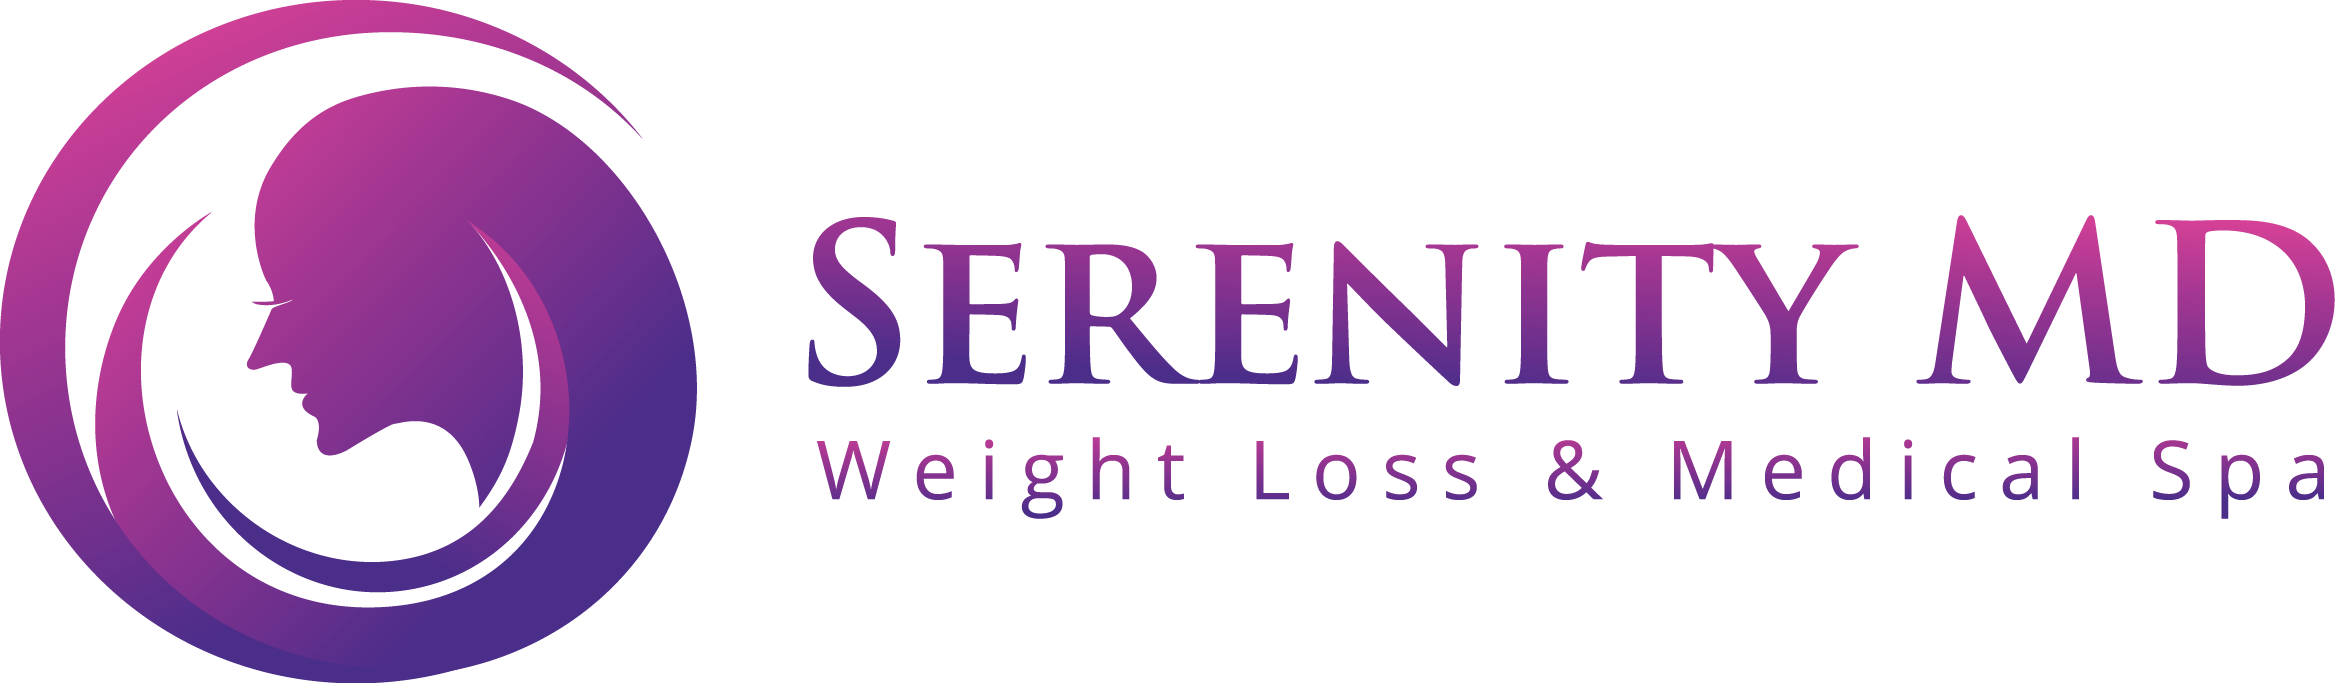 Serenity Md Medical Weight Loss And Medical Spa Chino